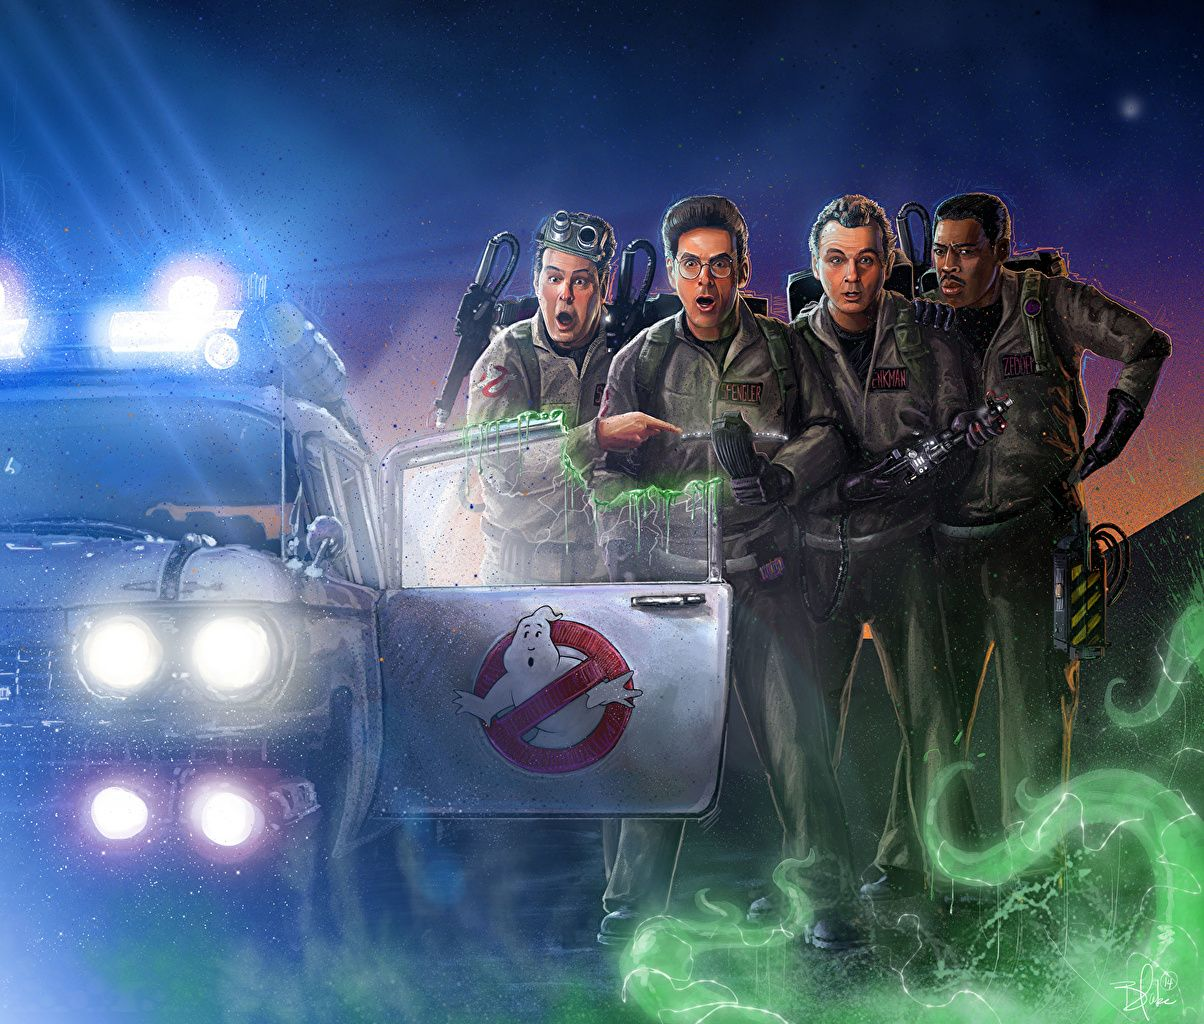 Ghostbusters 1984 Wallpapers Top Free Ghostbusters 1984 Backgrounds Wallpaperaccess